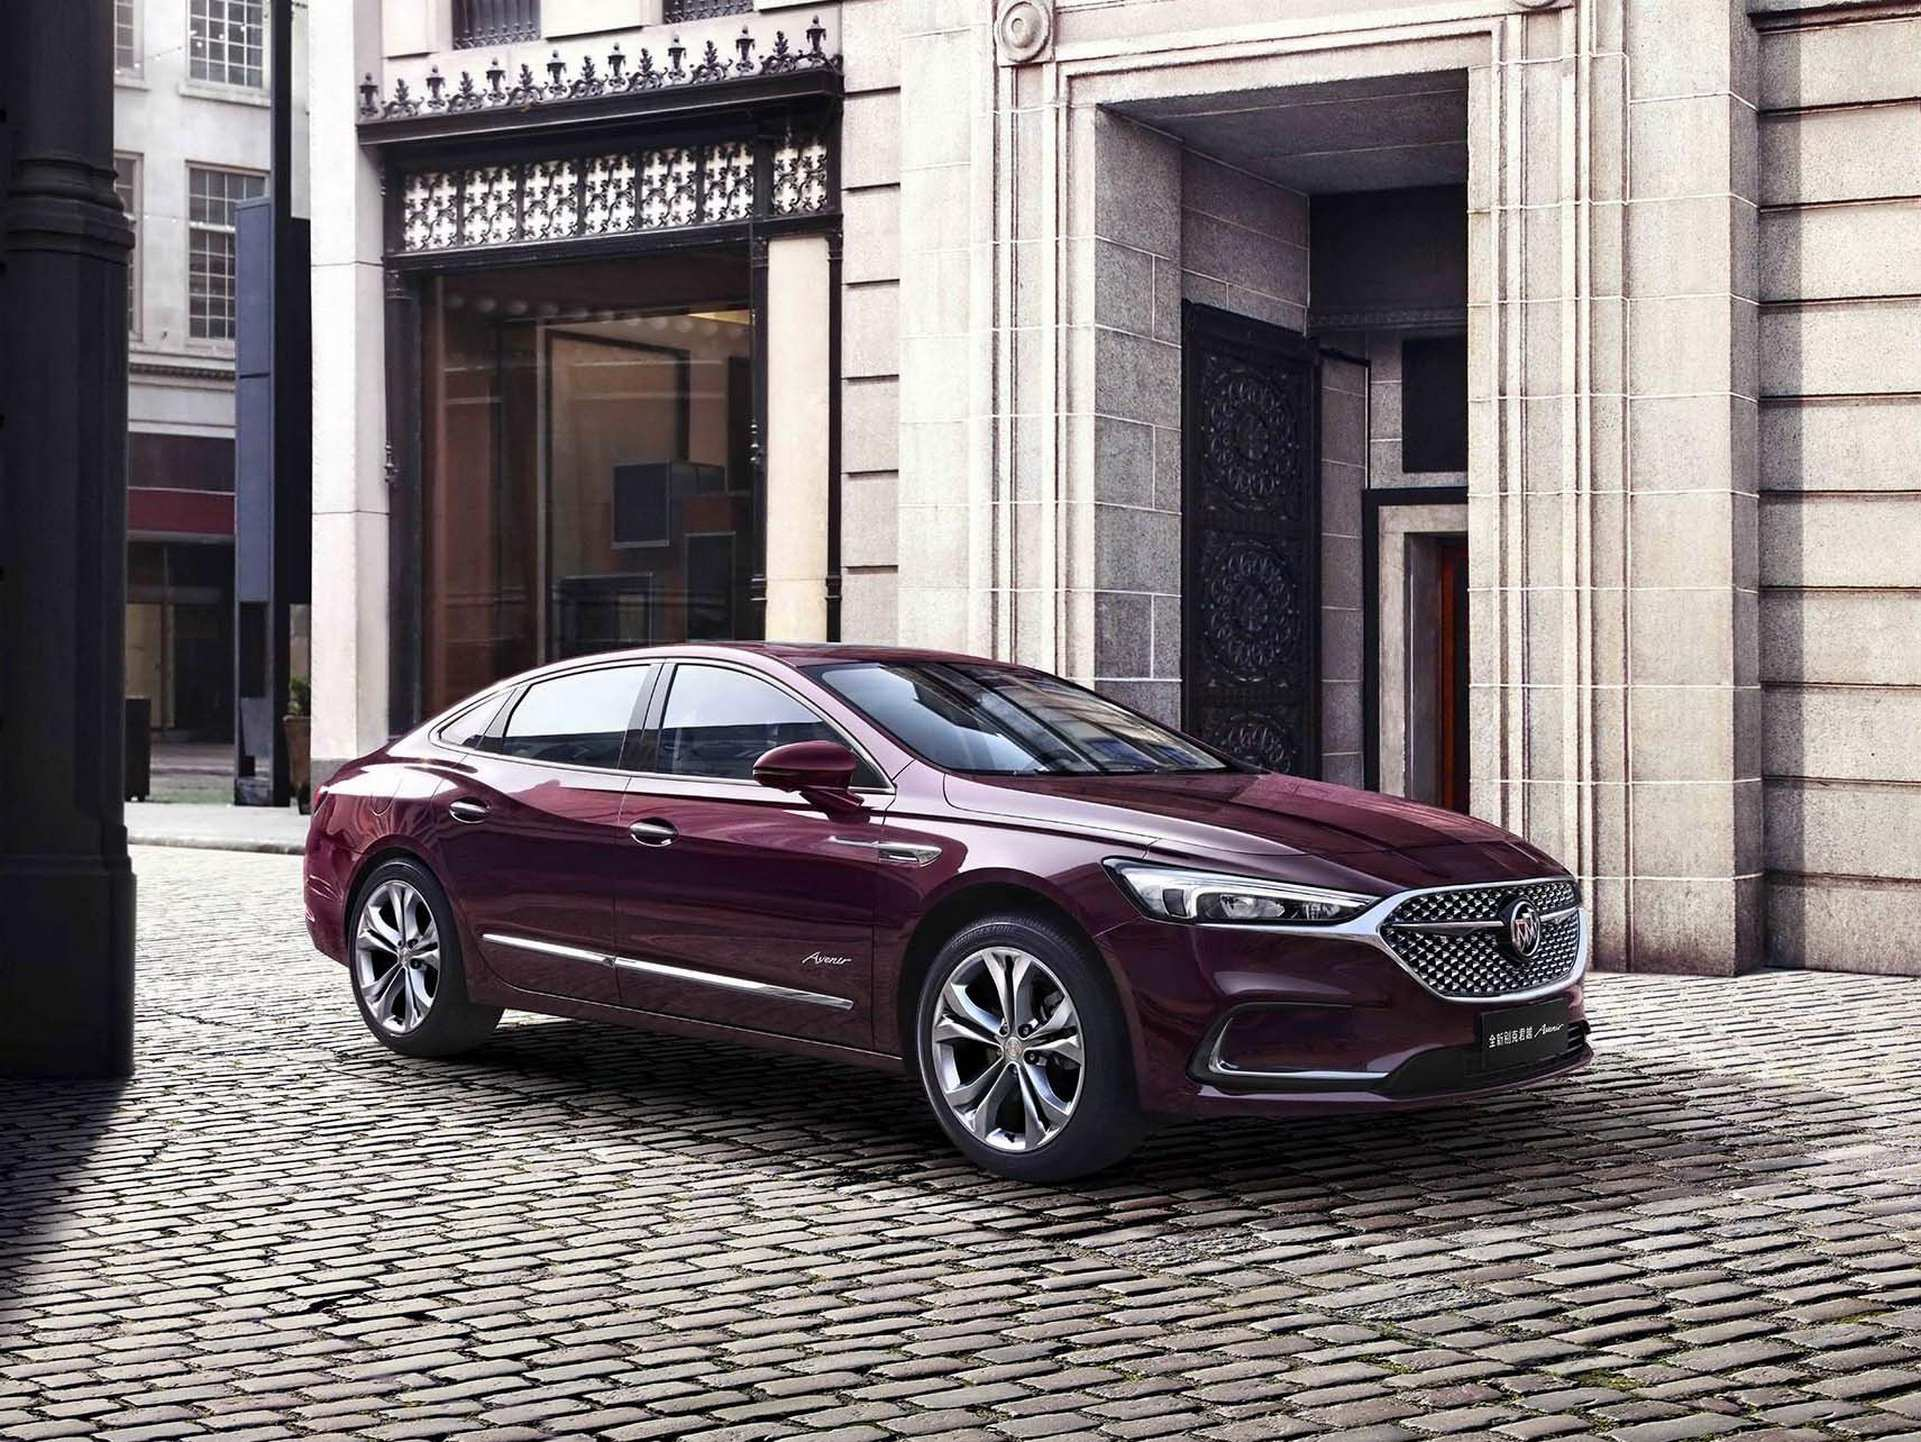 62 New 2020 Buick Lacrosse China Speed Test by 2020 Buick Lacrosse China